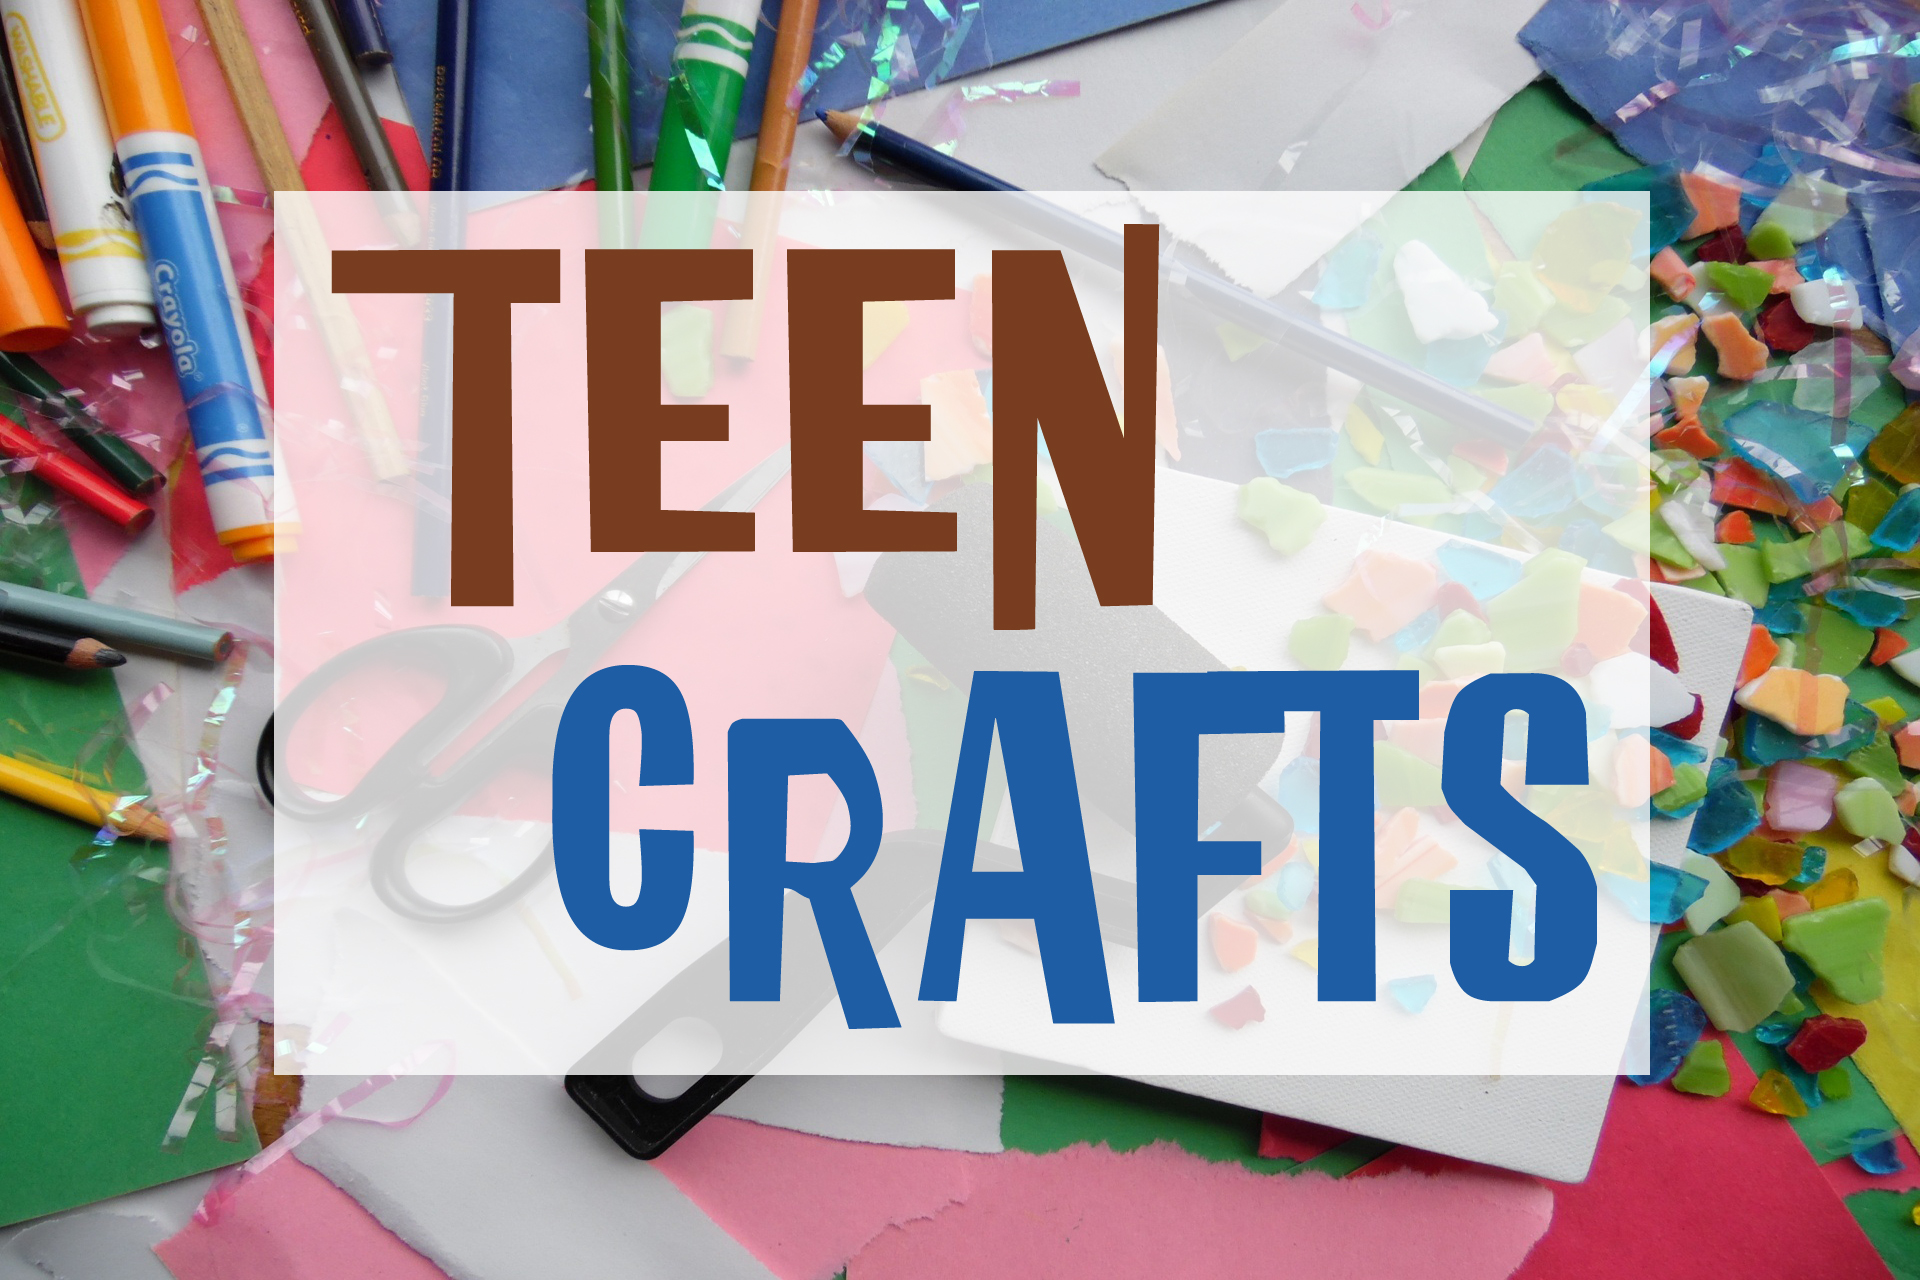 Teen Crafts